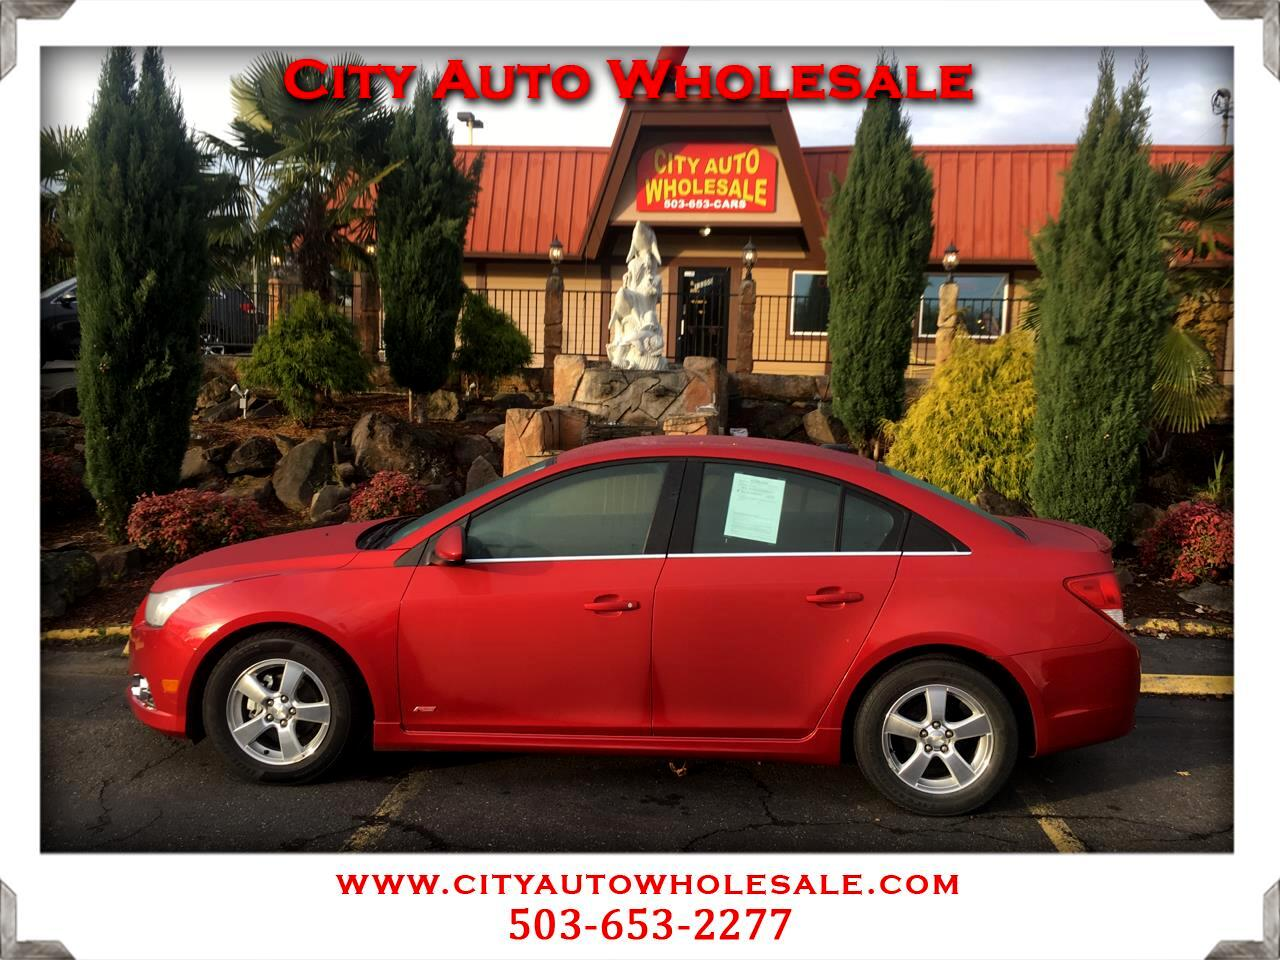 2014 Chevrolet Cruze 1LT Manual